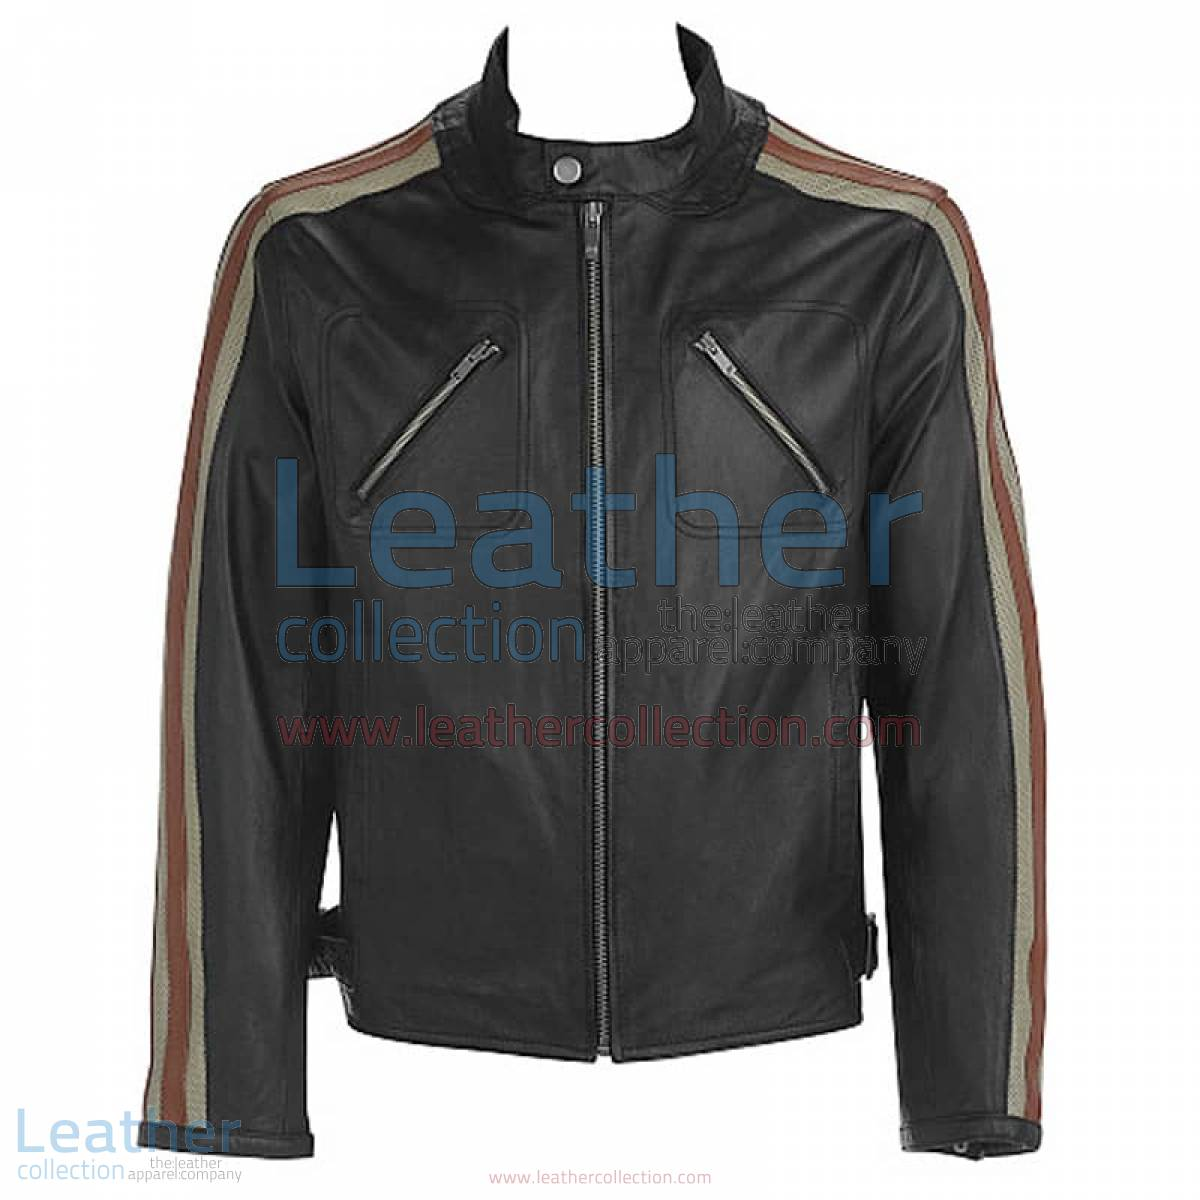 Leather Jacket With Stripes on Sleeves | leather jacket with stripes